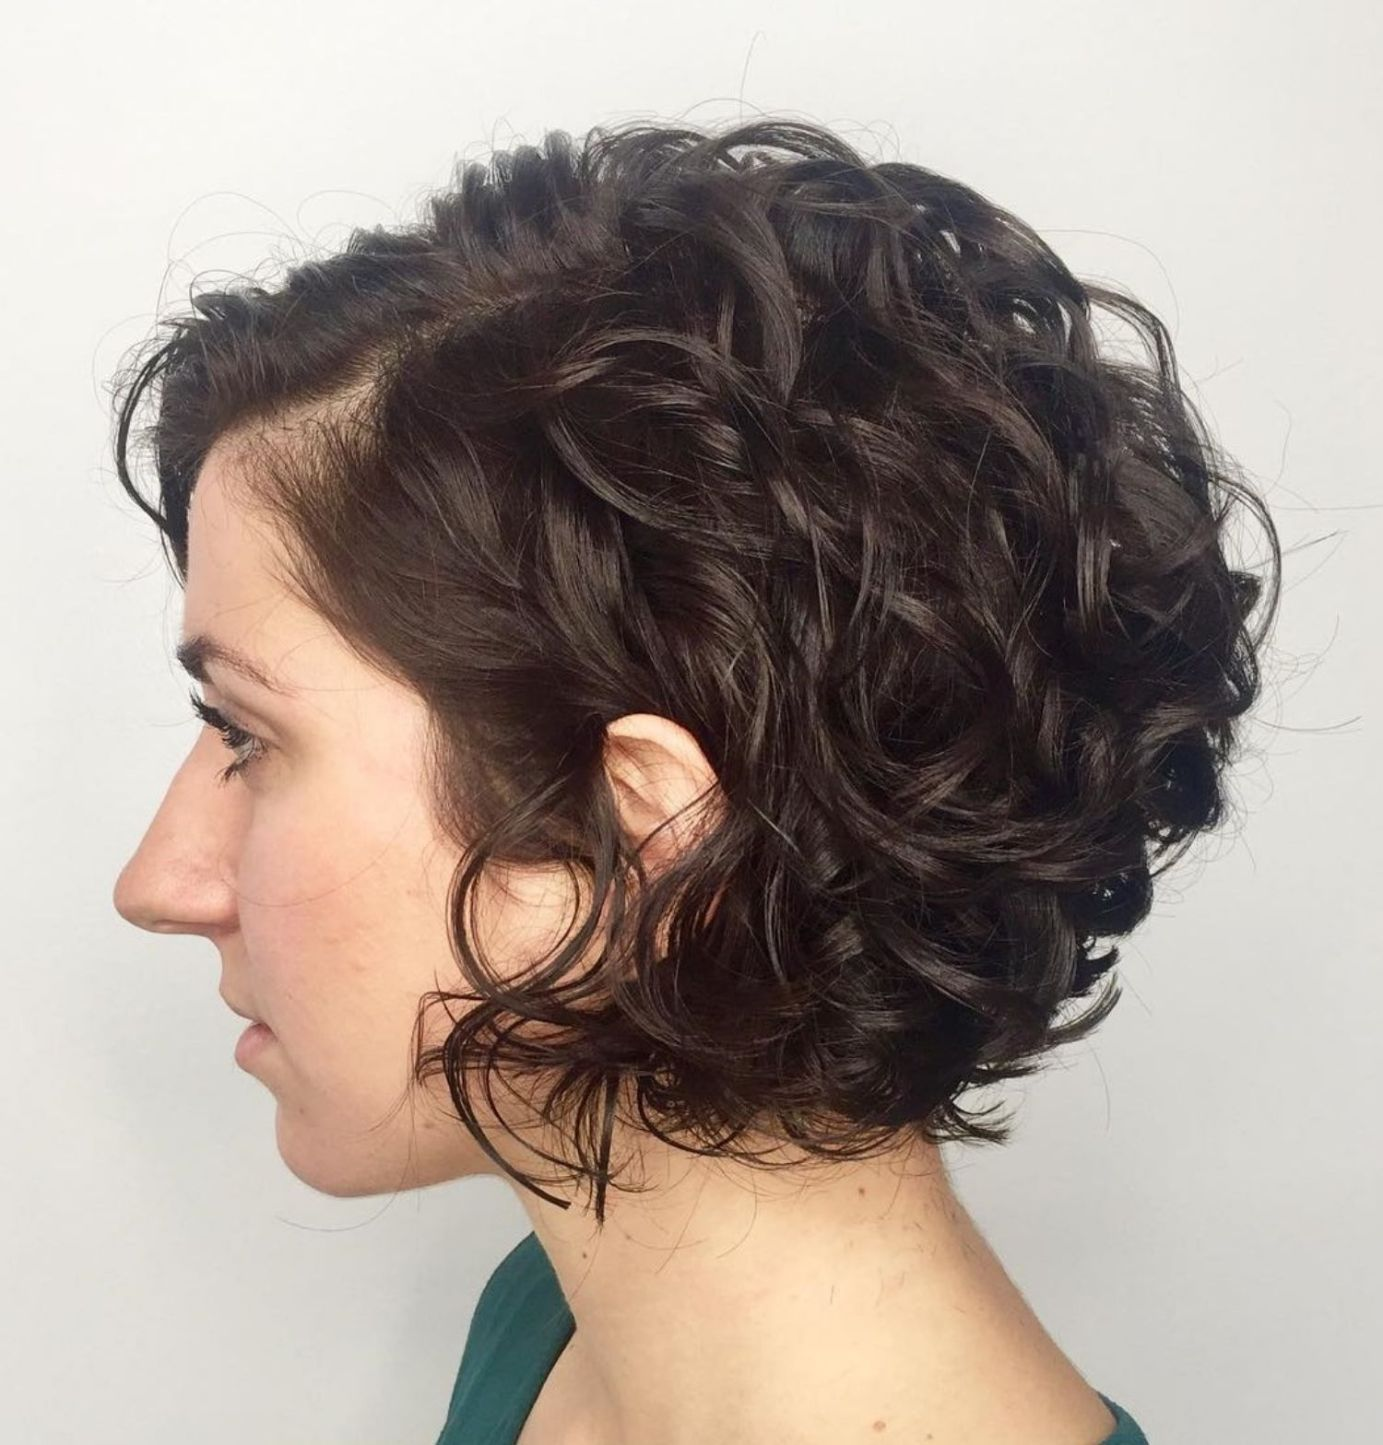 Jaw-Length Curly Bob With Bangs | Short curly haircuts, Curly hair styles, Haircuts  for curly hair